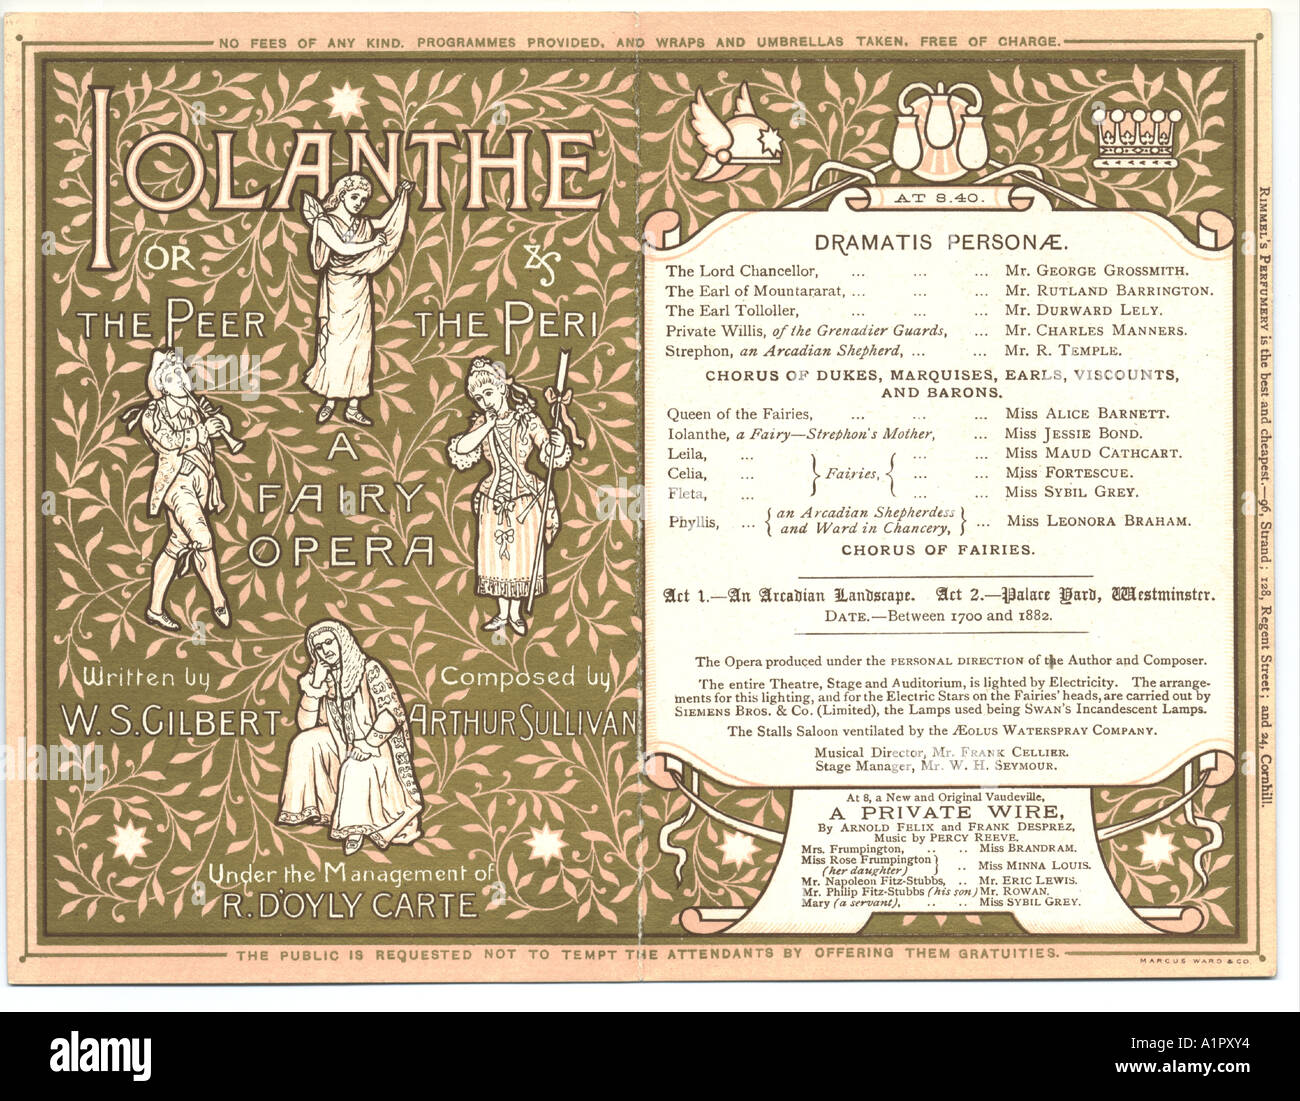 Savoy theatre, London, programme, for Iolanthe, inside pages circa 1884 - Stock Image